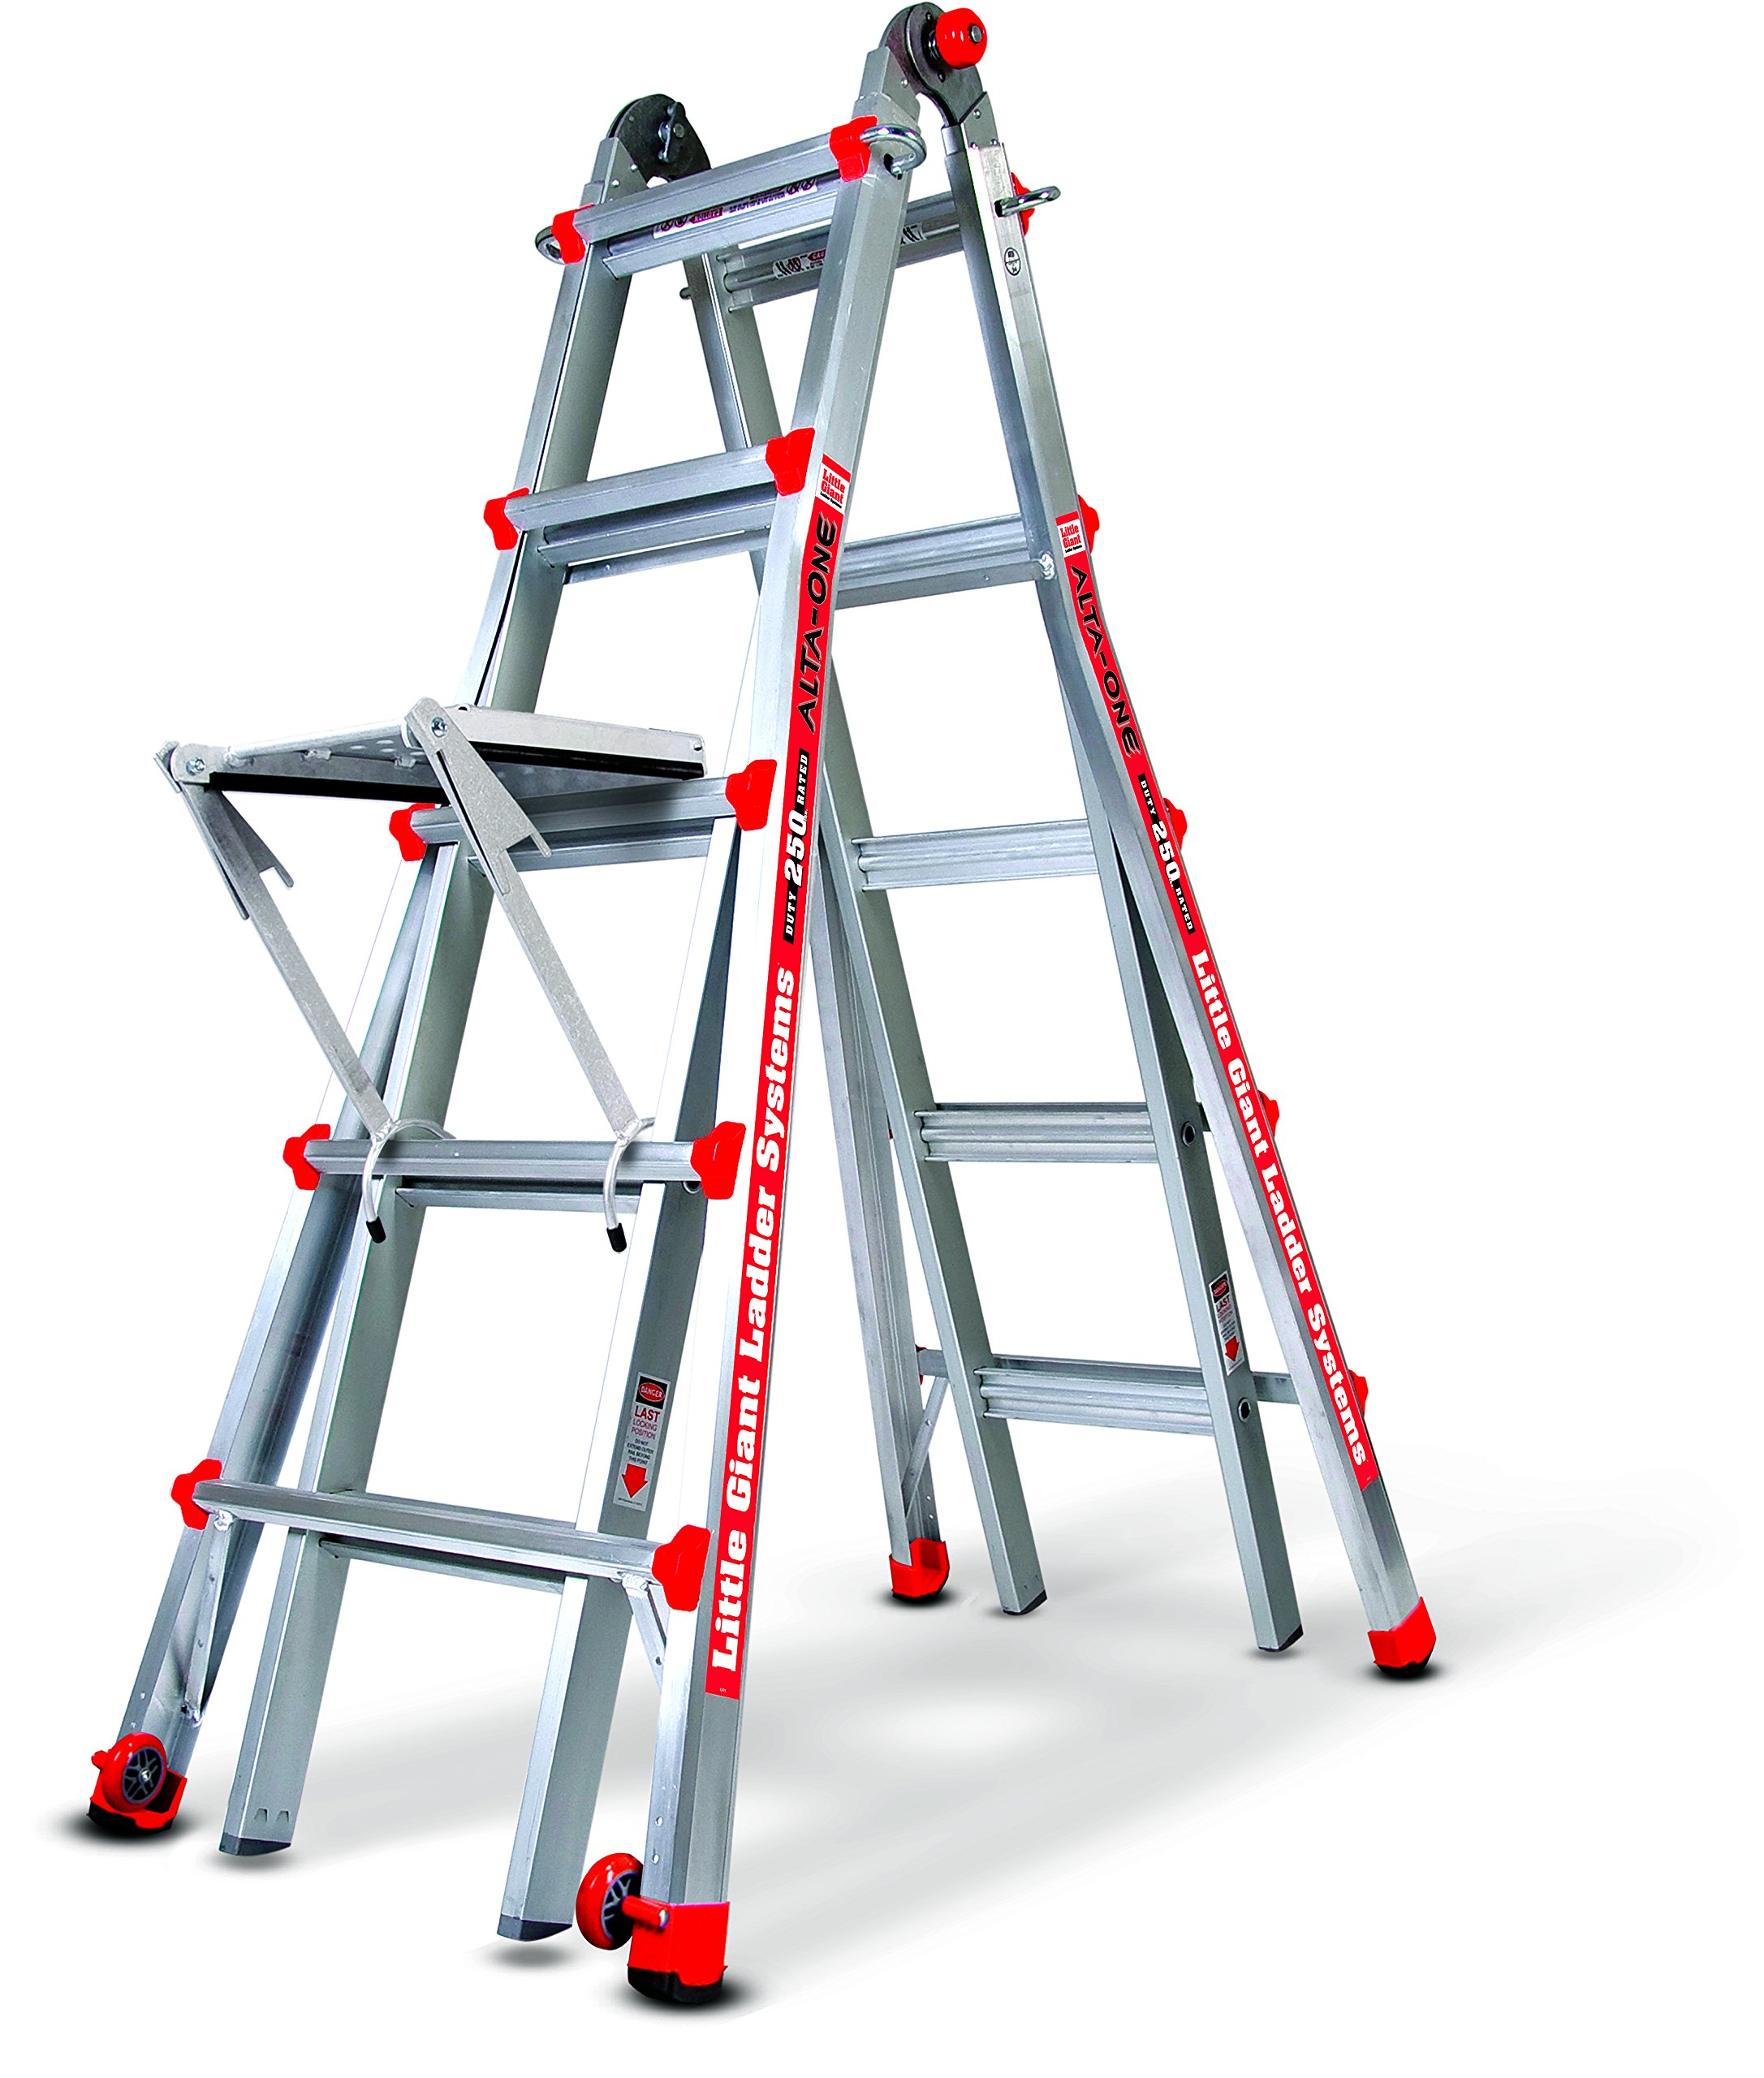 Little Giant Alta One 22 Foot Ladder with Work Platform (250-lb. Weight Rating, Type 1 14016-104) by Little Giant Ladder Systems